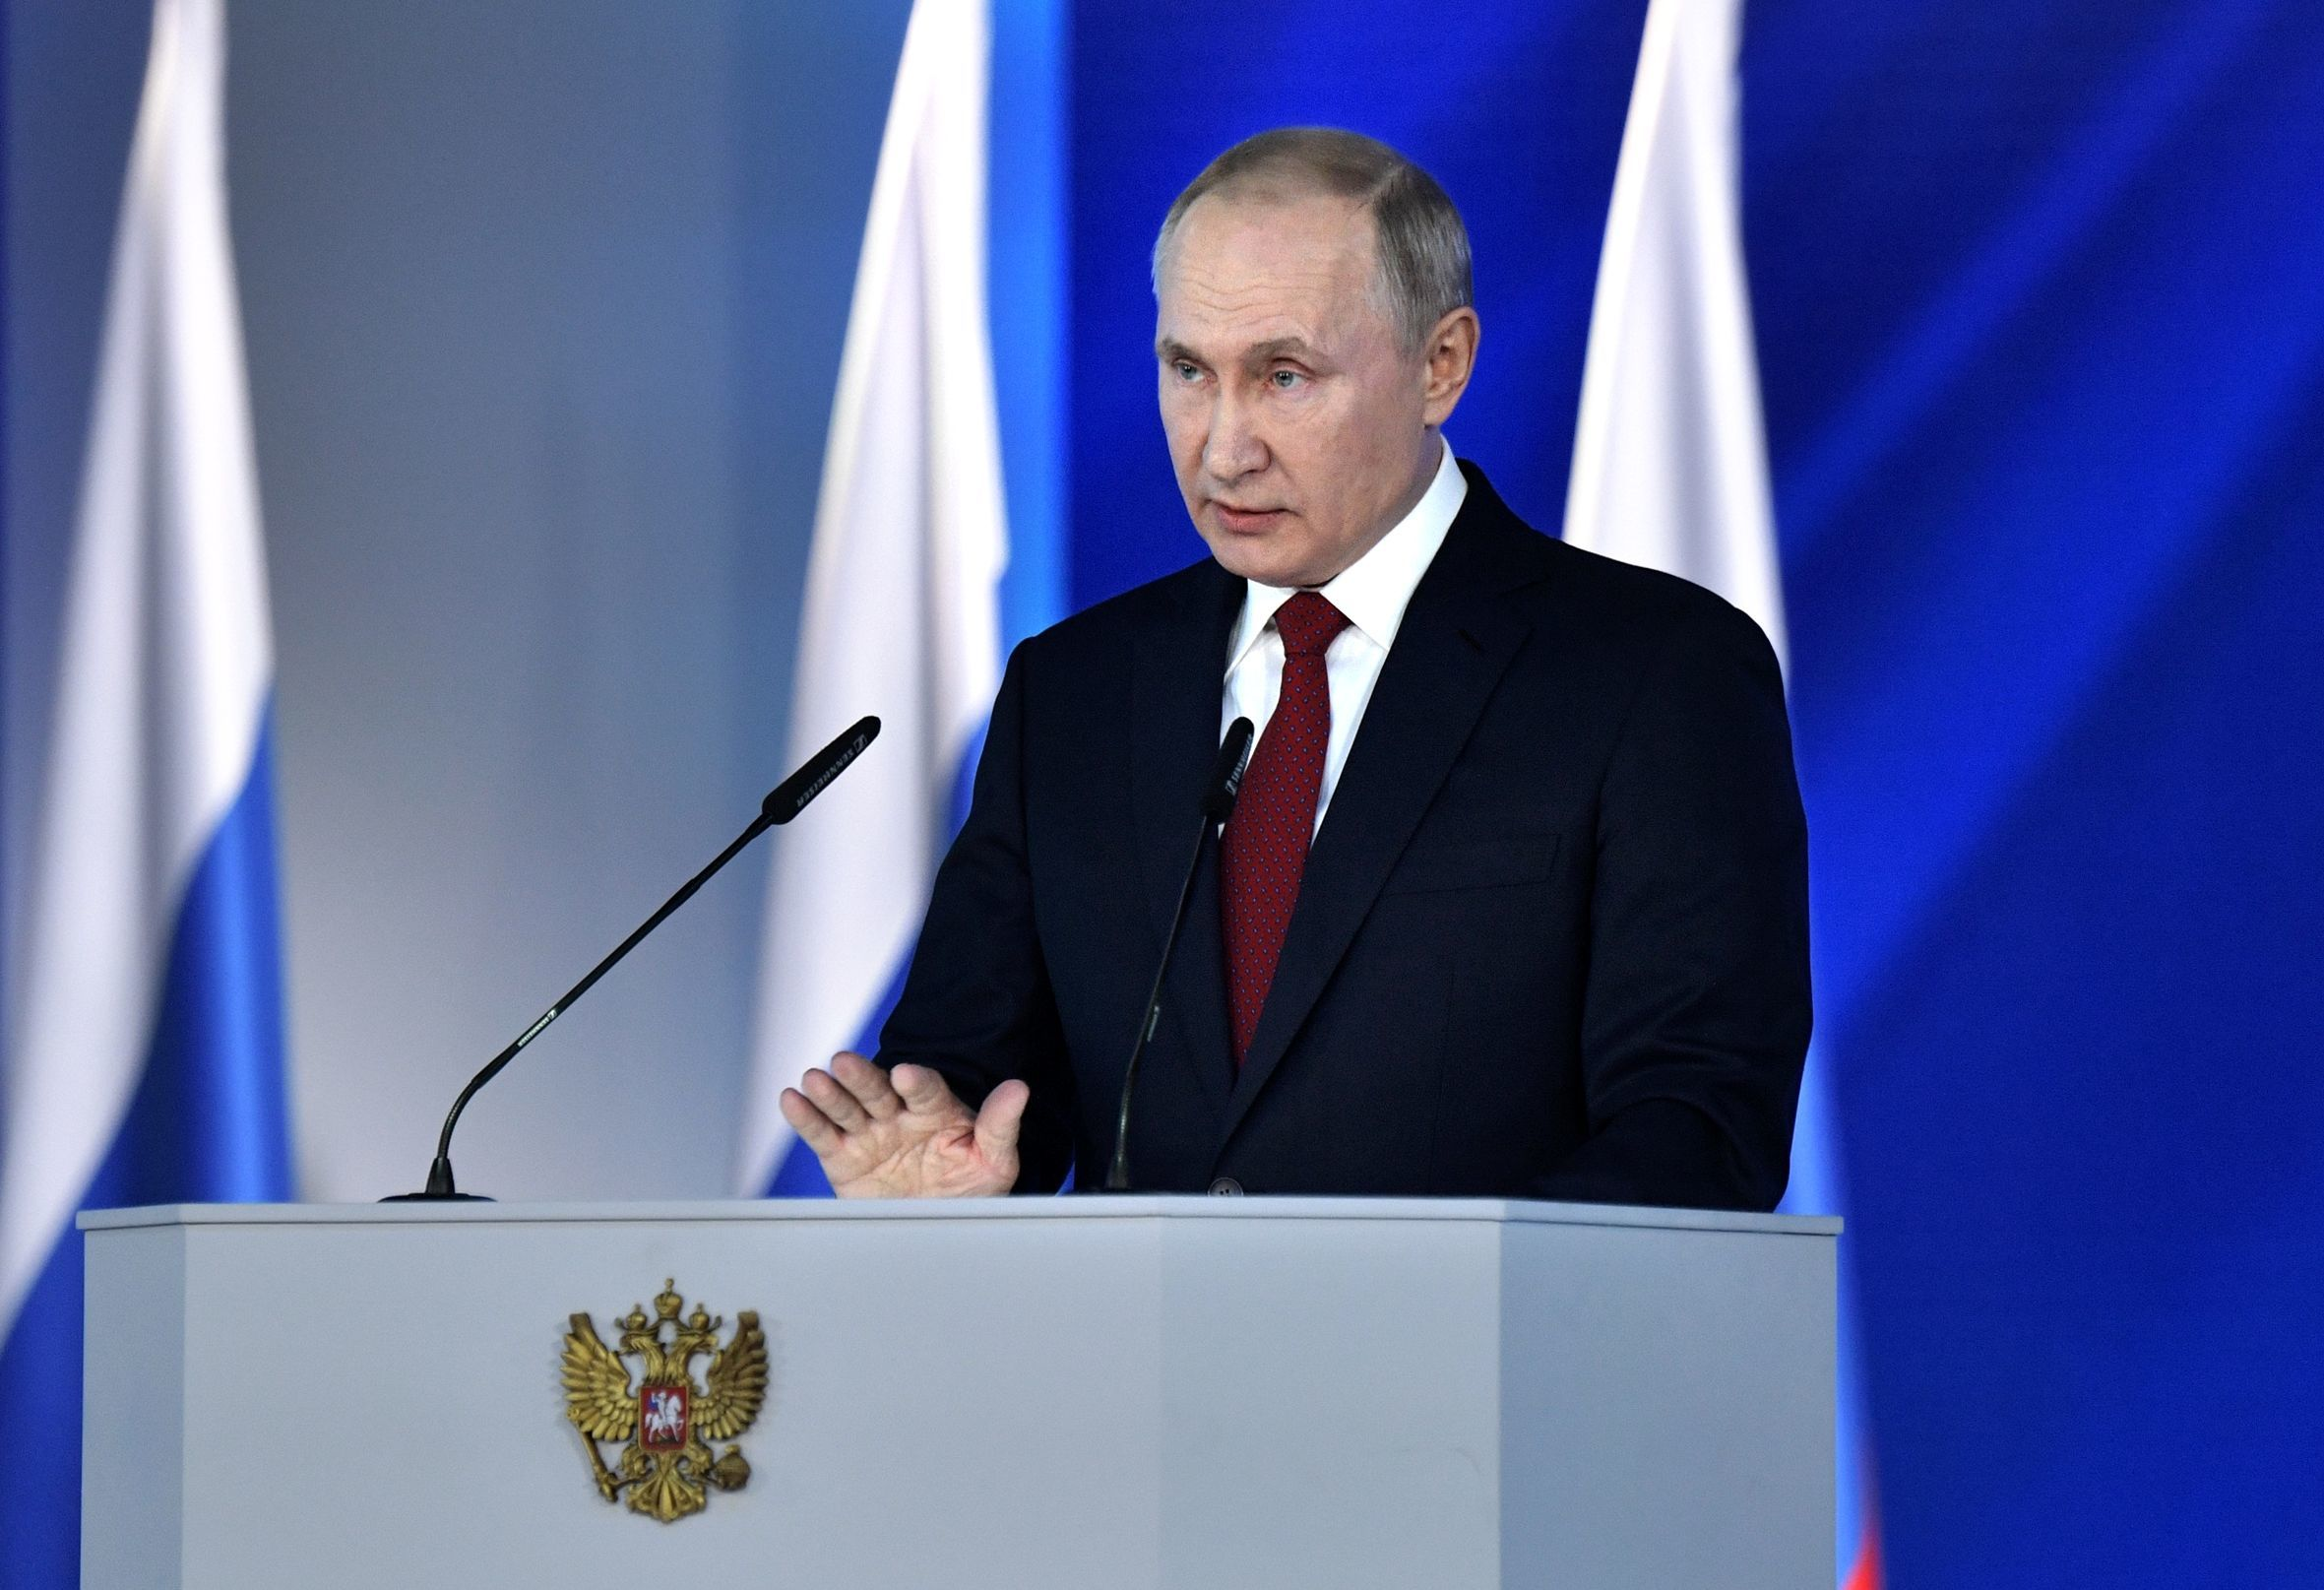 Russian President Vladimir Putin's annual address to to the Federal Assembly